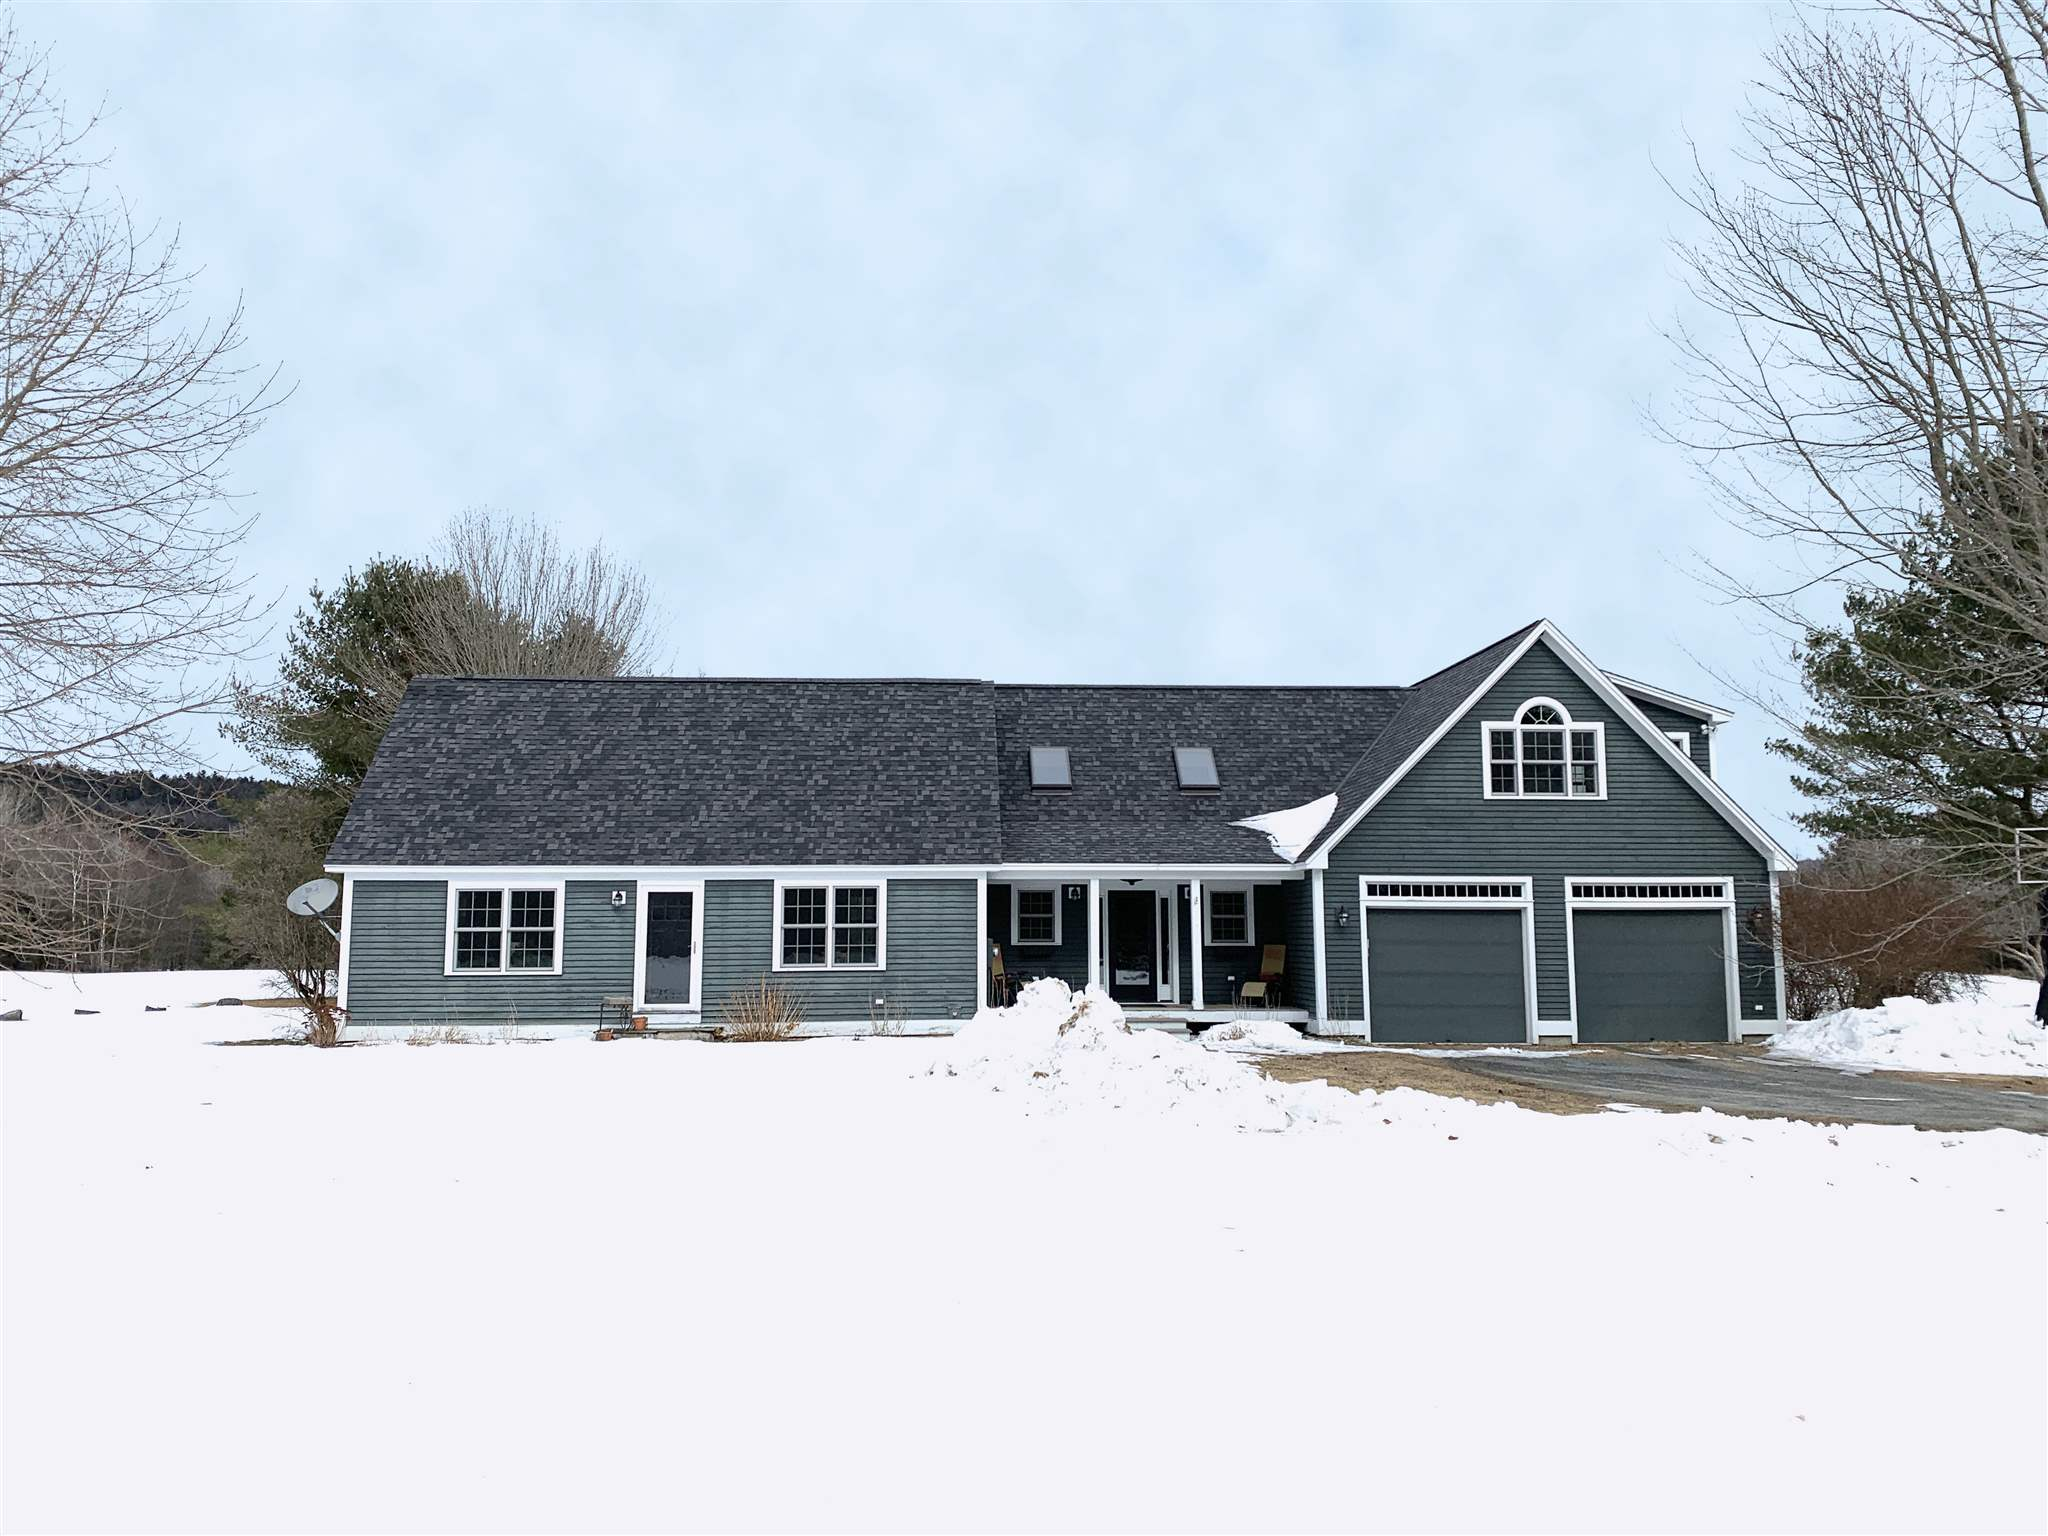 FAIRLEE VT Homes for sale